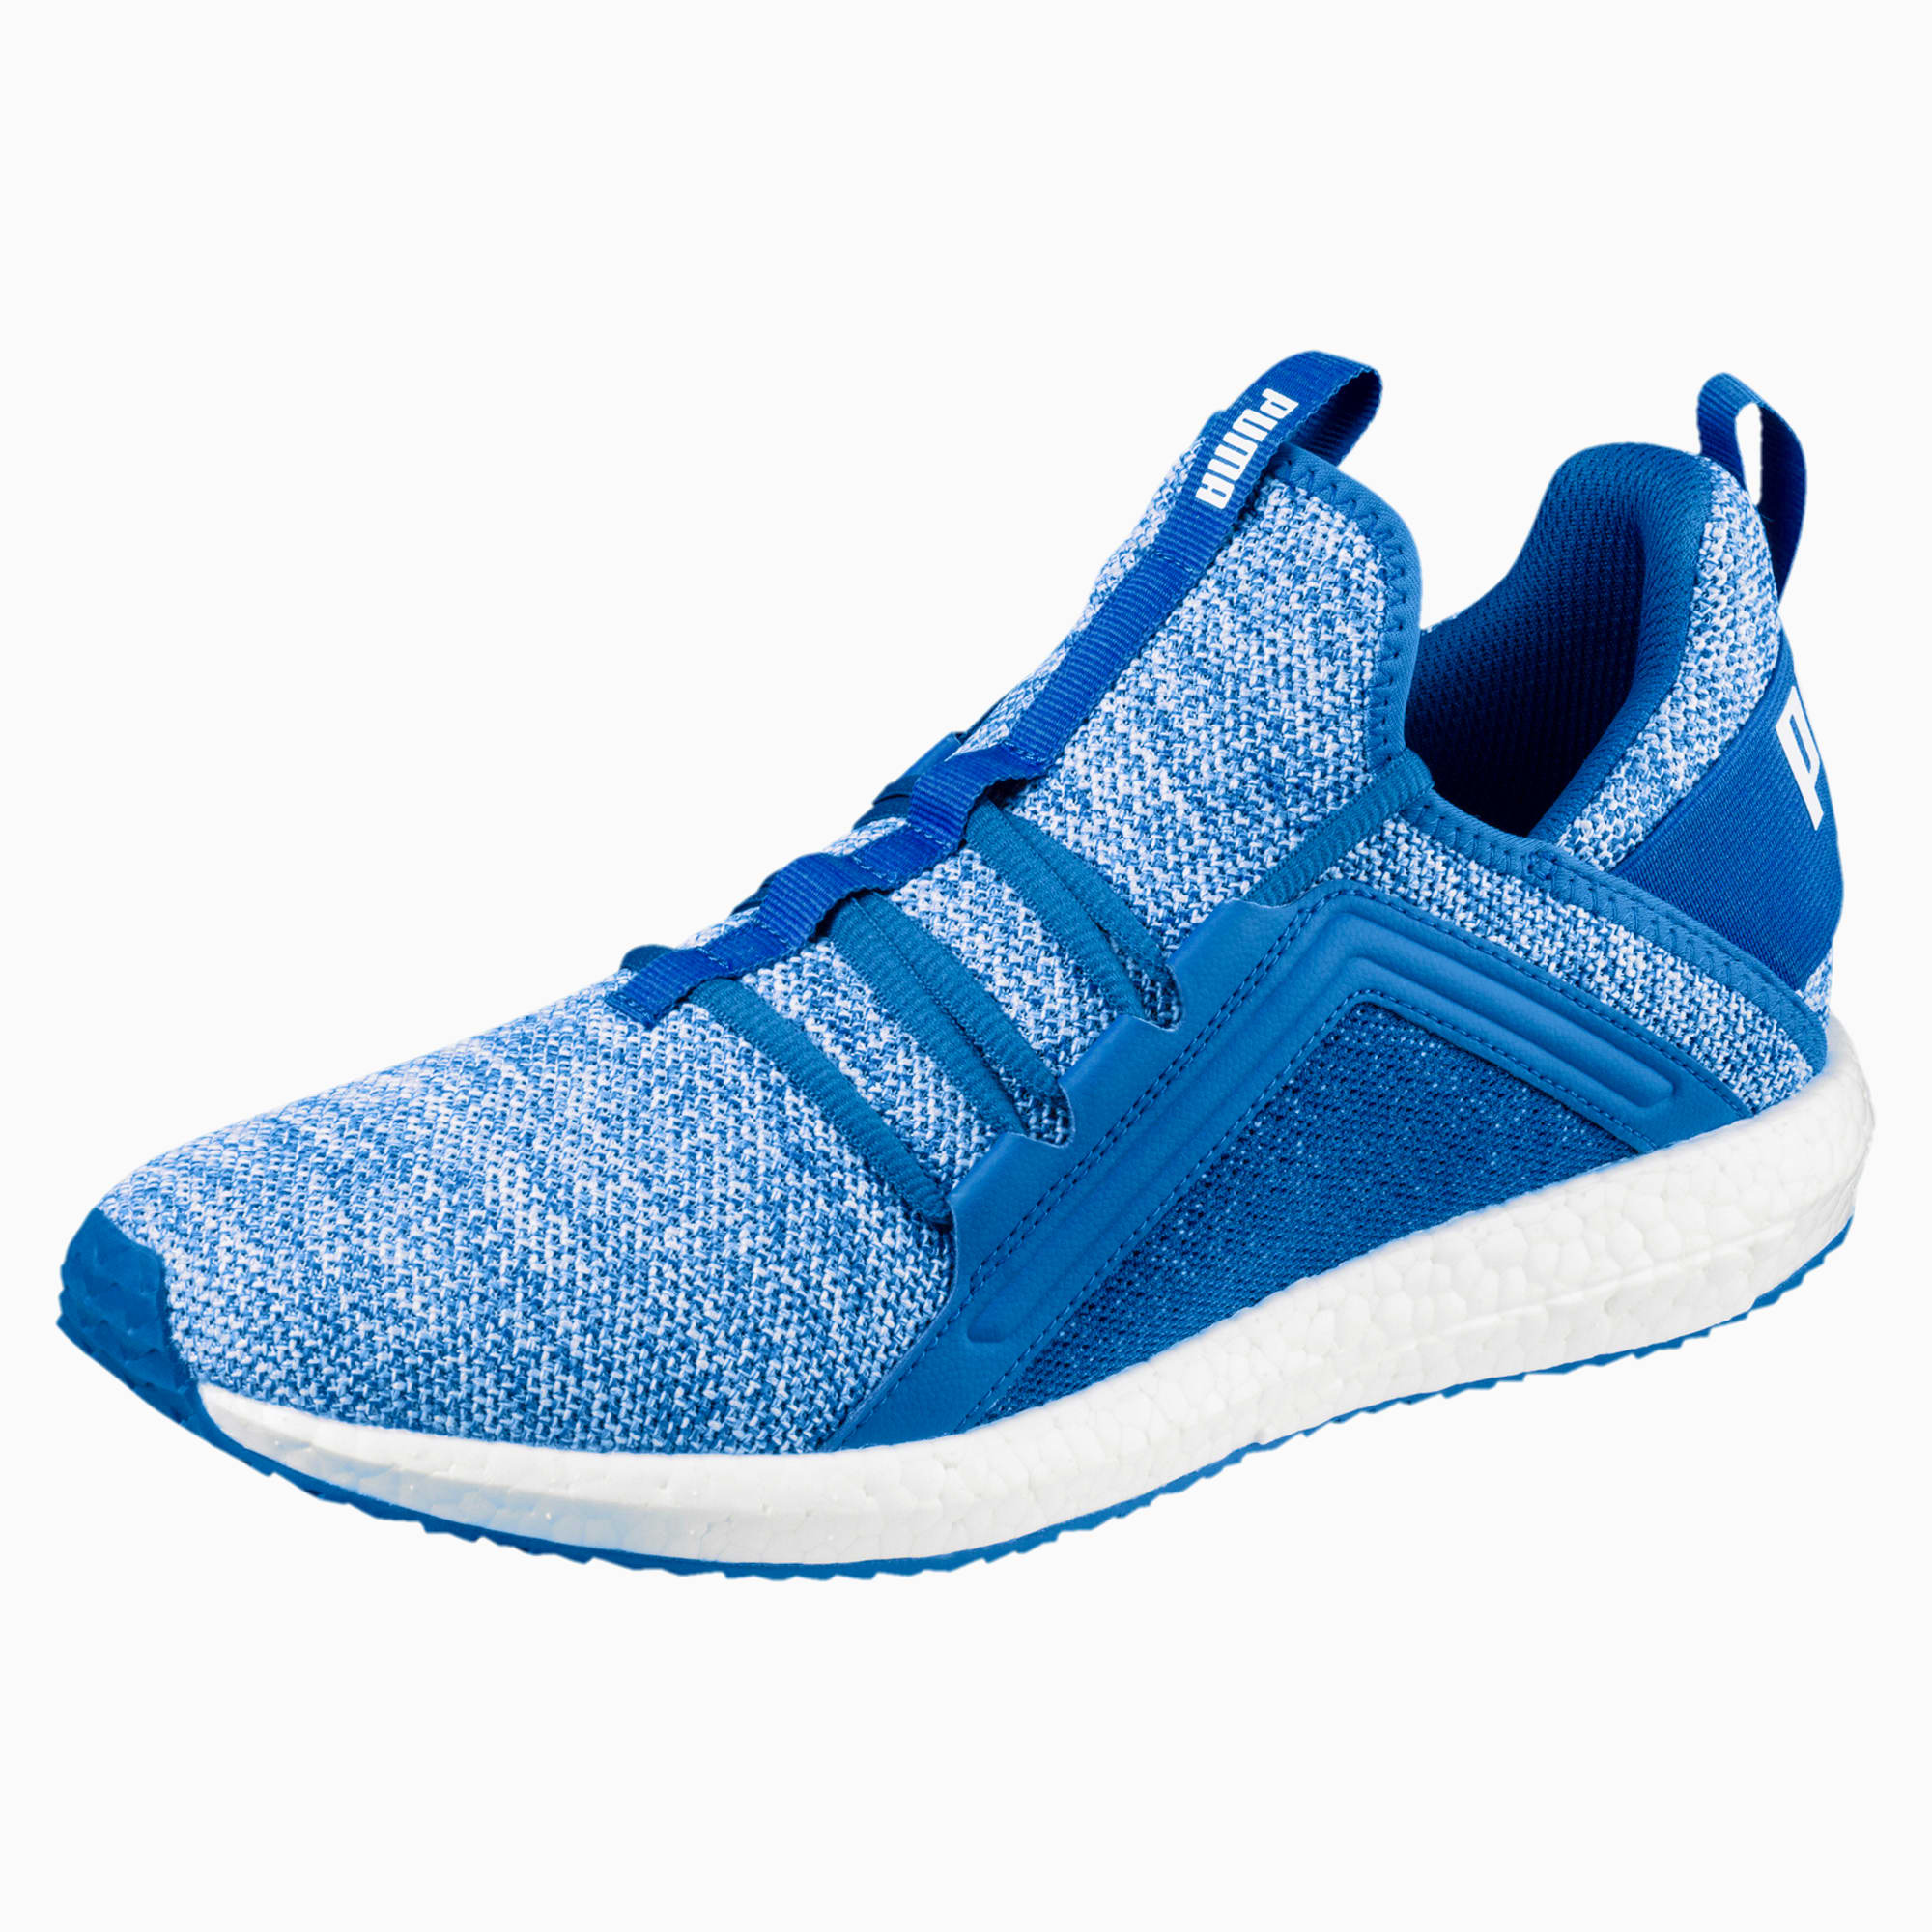 Mega NRGY Knit Men's Running Shoes